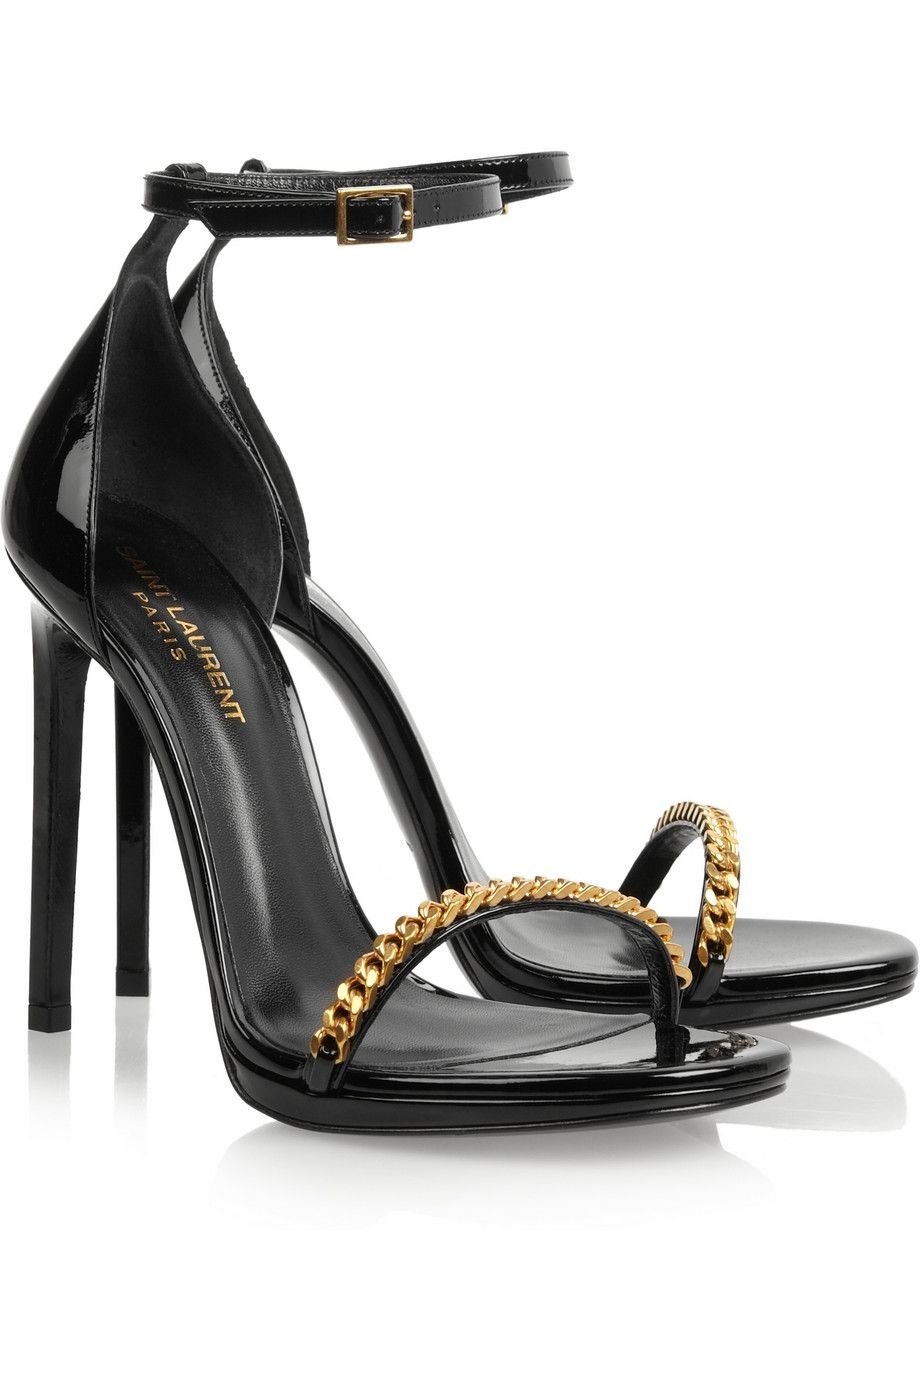 Yves Saint Laurent Patent Leather Embellished Sandals sale extremely free shipping 2014 unisex dJEhAFX8d